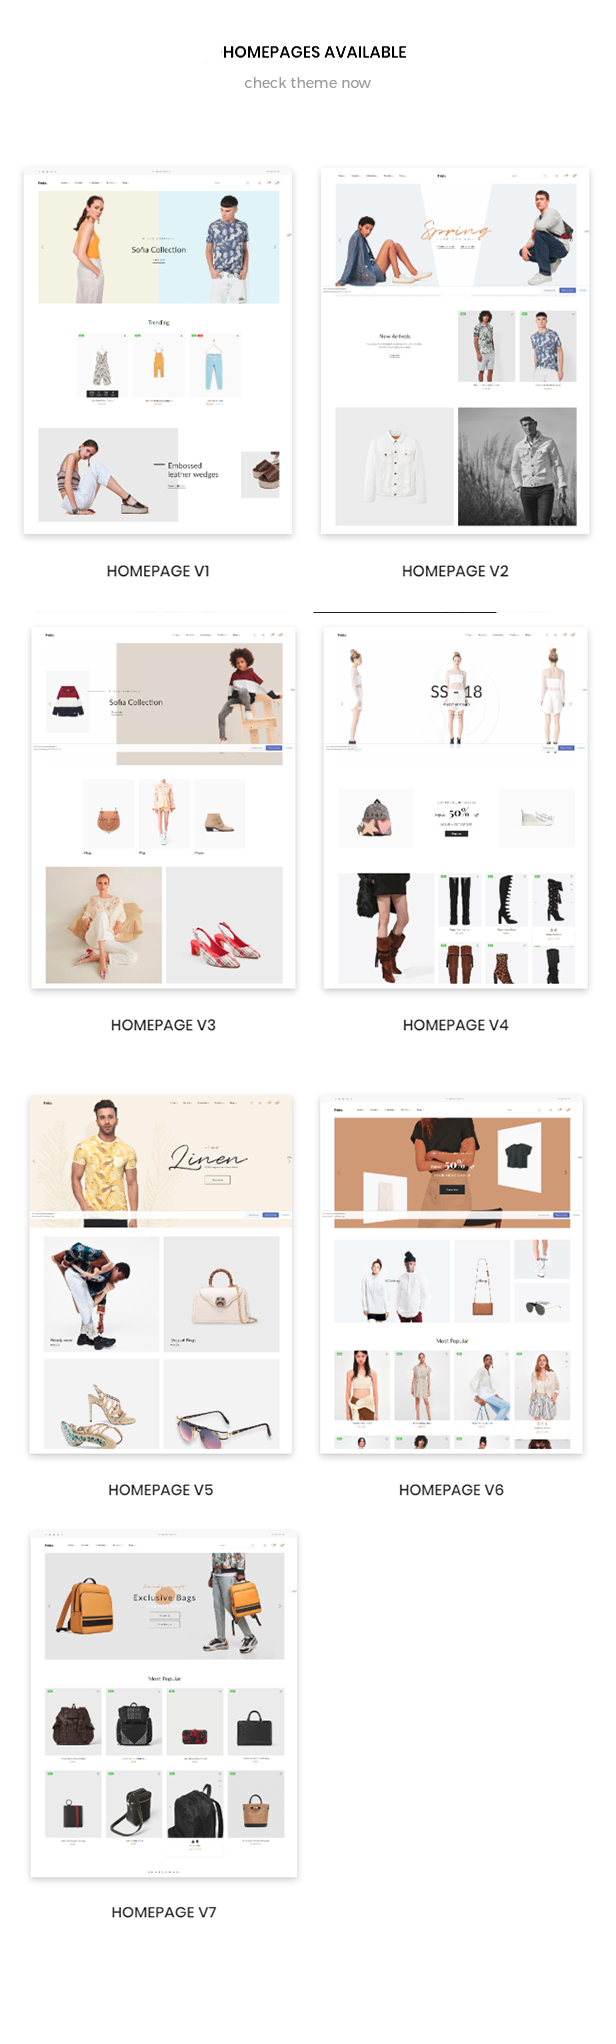 Ap Frido Best Fashion Boutique Shopify Theme - Mutiple homepages